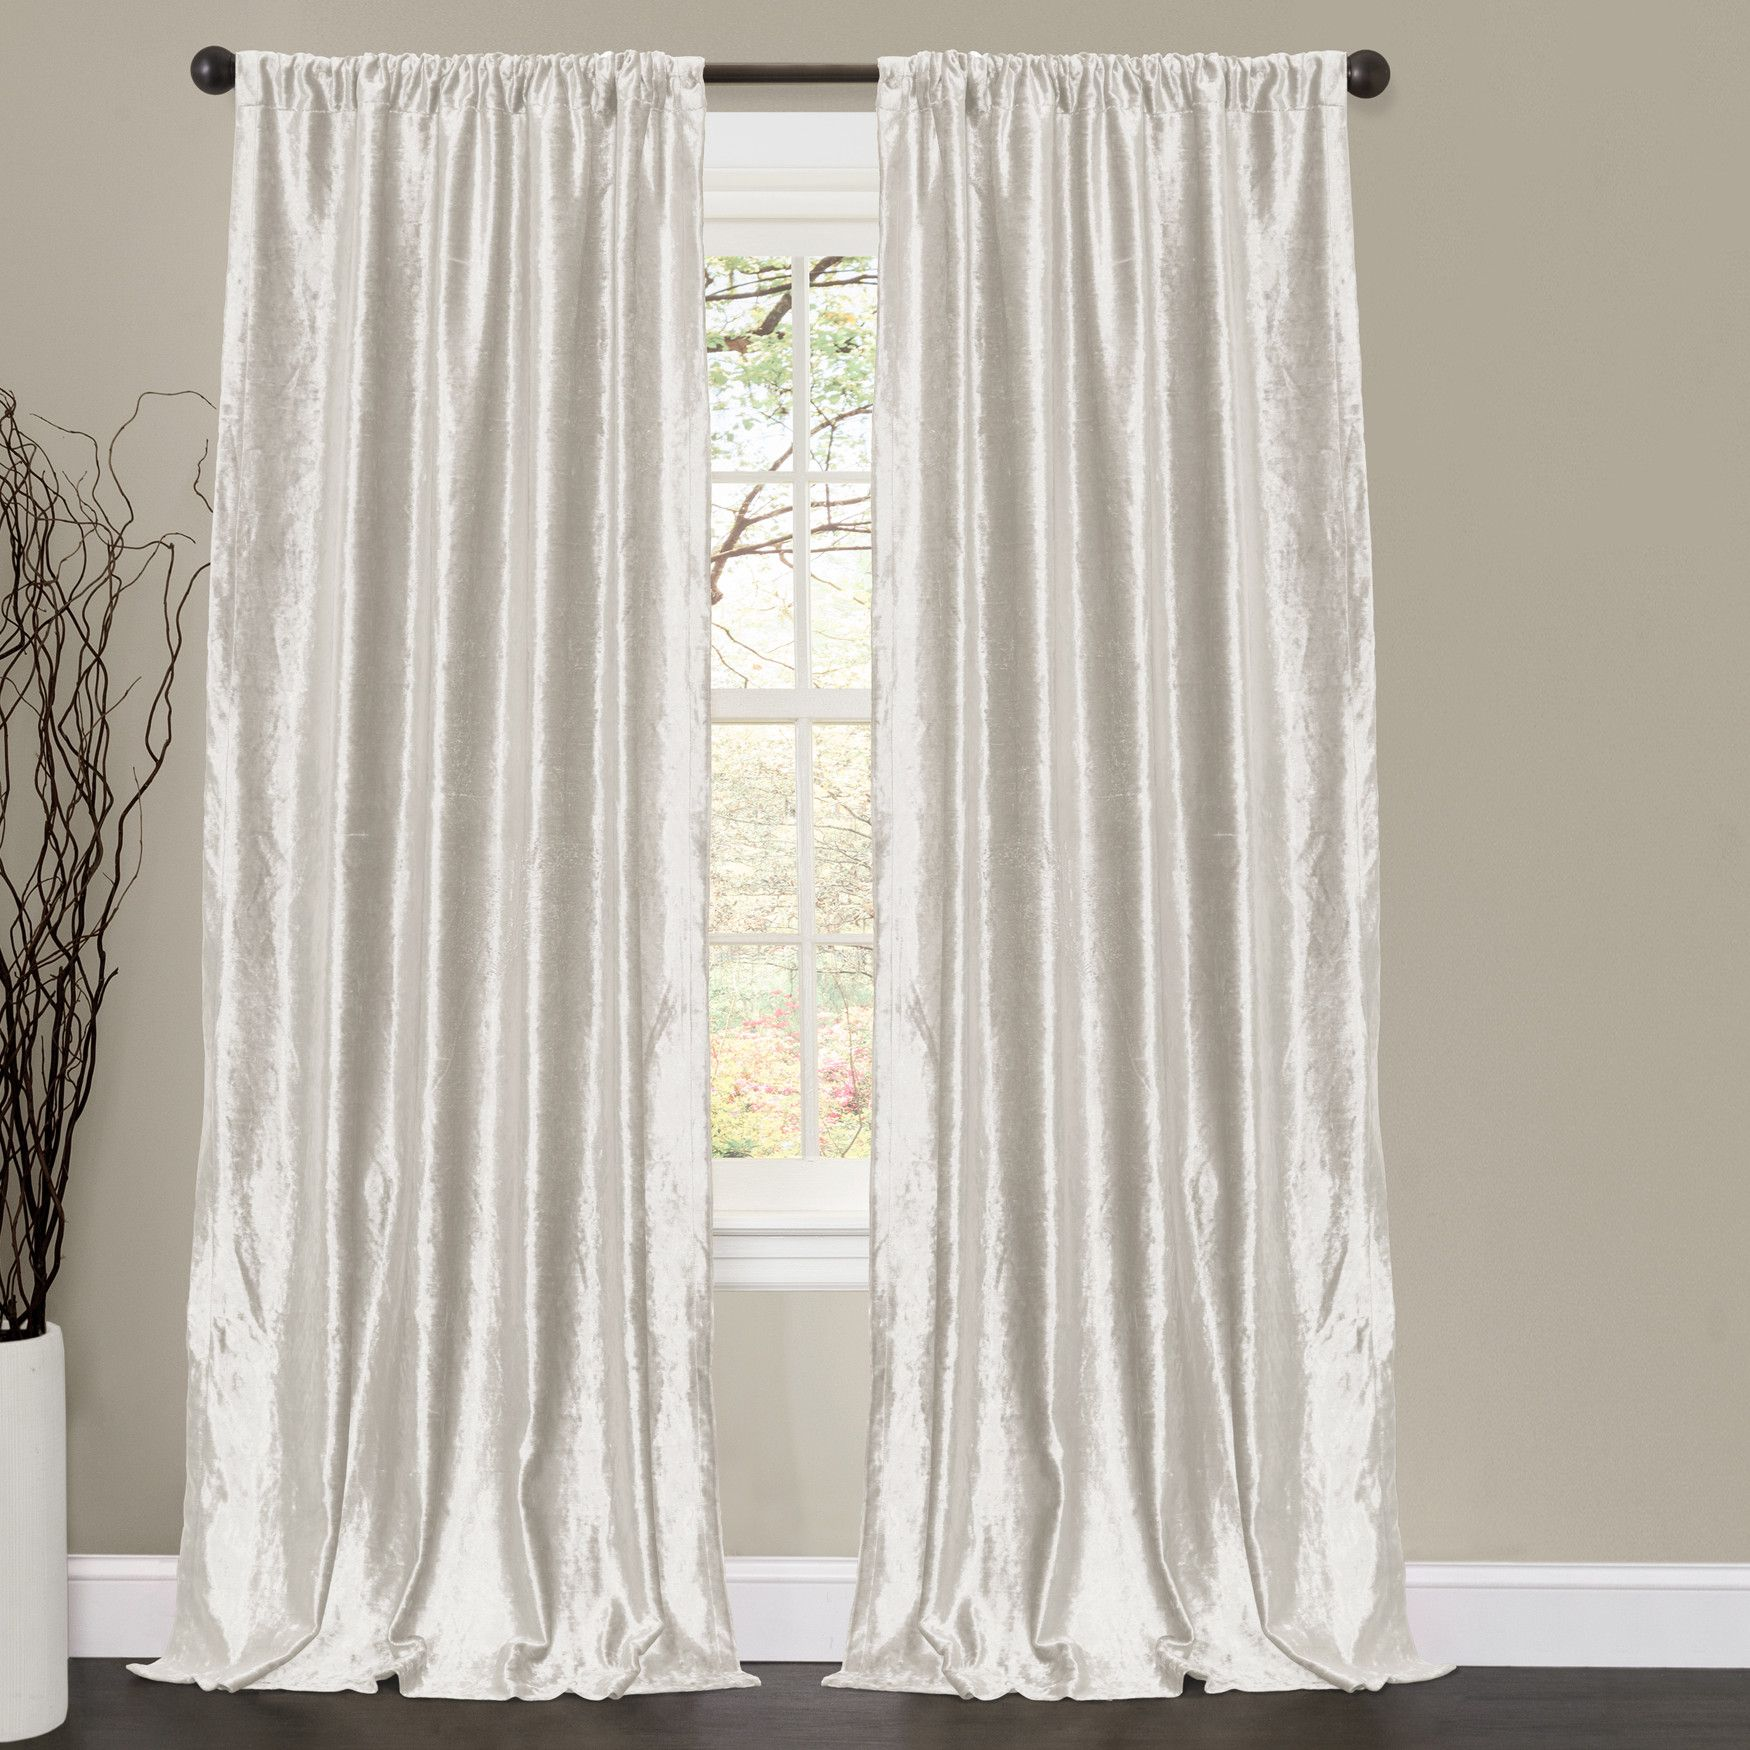 drapes navy gmode blue white me velvet black curtains can dark do signature you it crushed